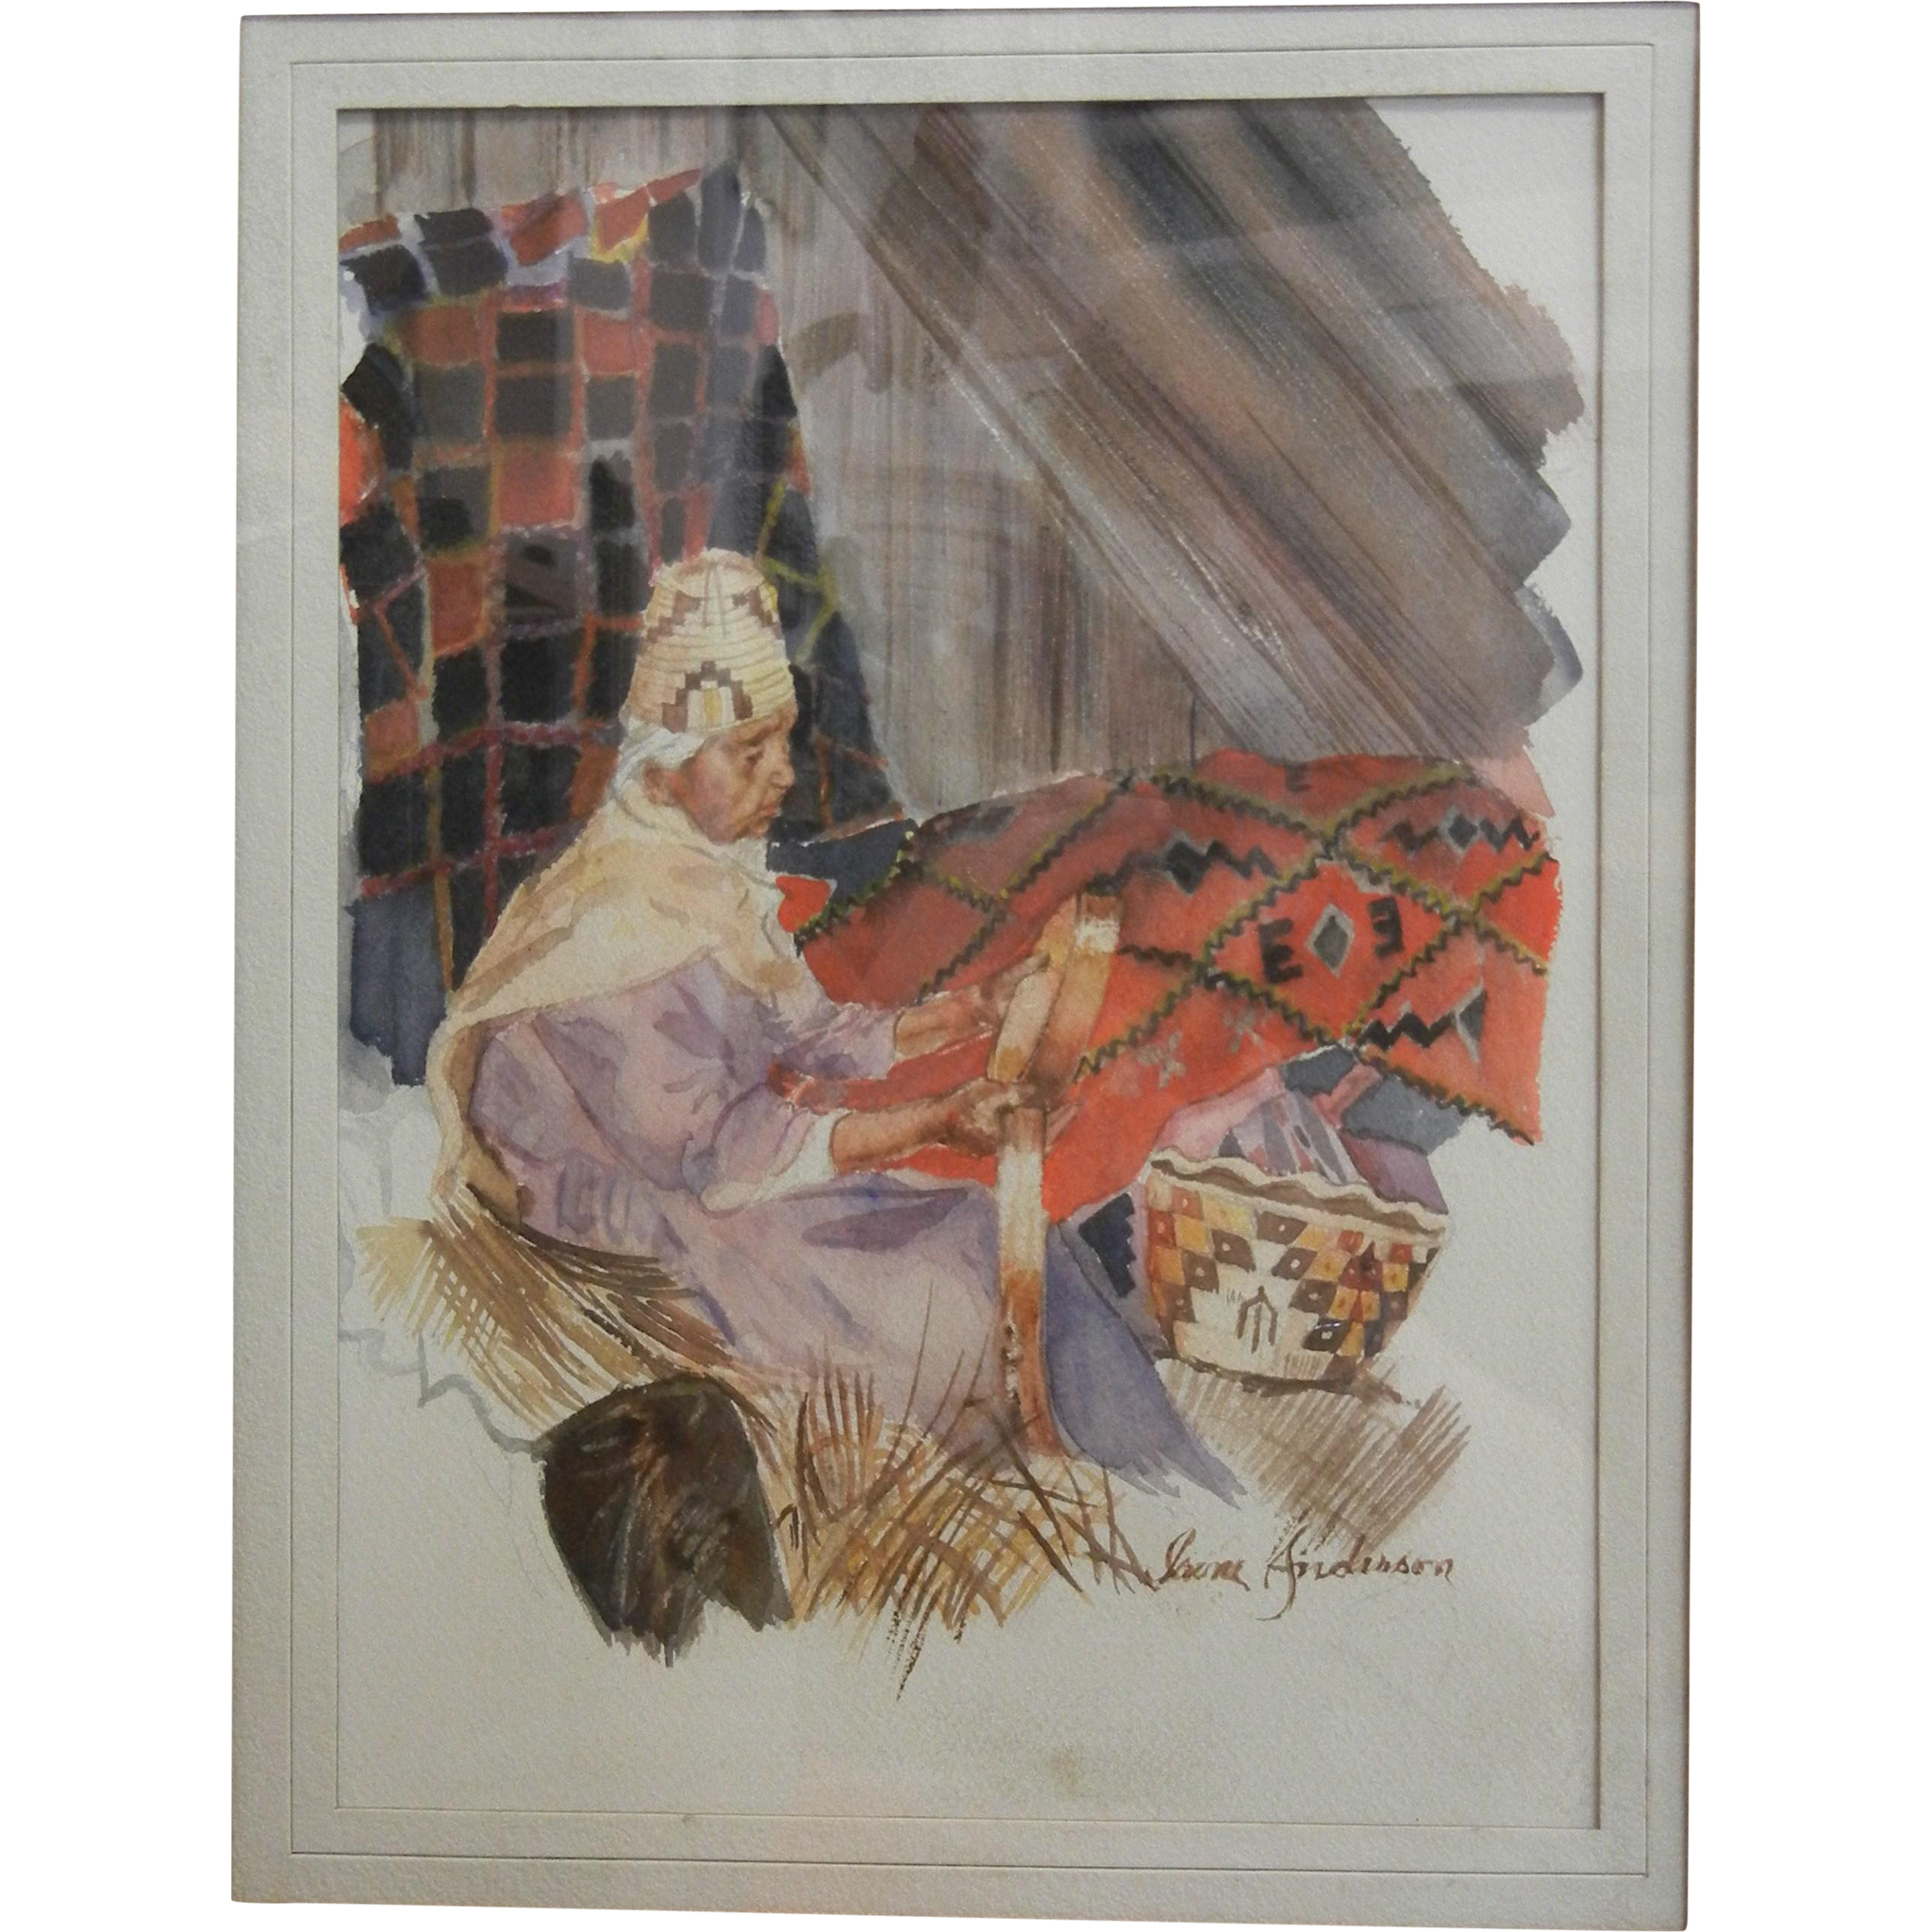 Vintage Original Native American Hand Painted Water Color Painting by Artist Irene Anderson Basket Weaver